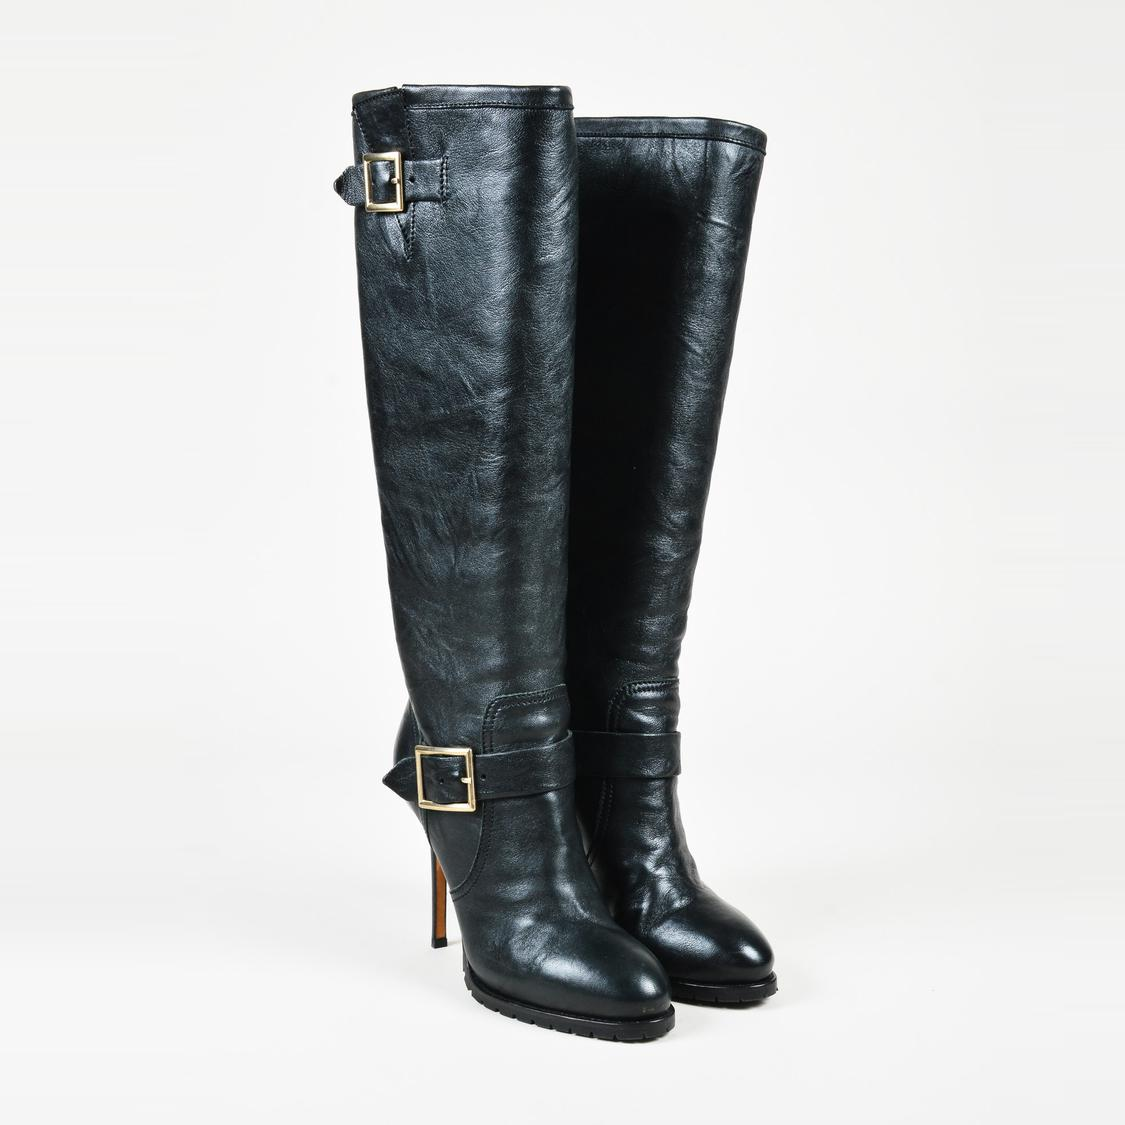 b2c4152c8aa Lyst - Jimmy Choo Black Leather Buckled Knee High Boots in Black